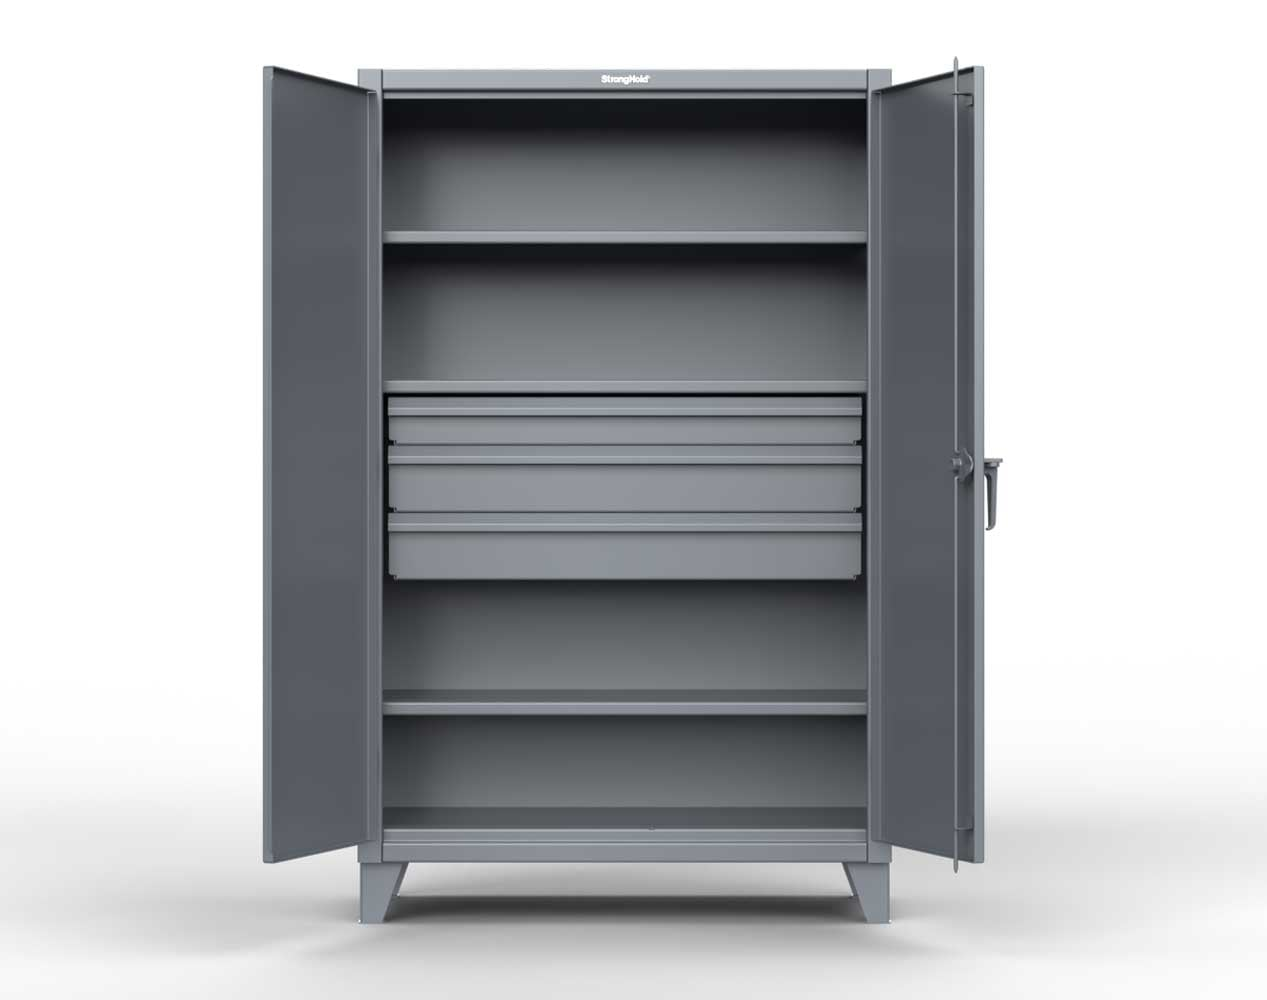 Extra Heavy Duty 12 GA Cabinet with 3 Drawers, 3 Shelves – 36 In. W x 24 In. D x 78 In. H